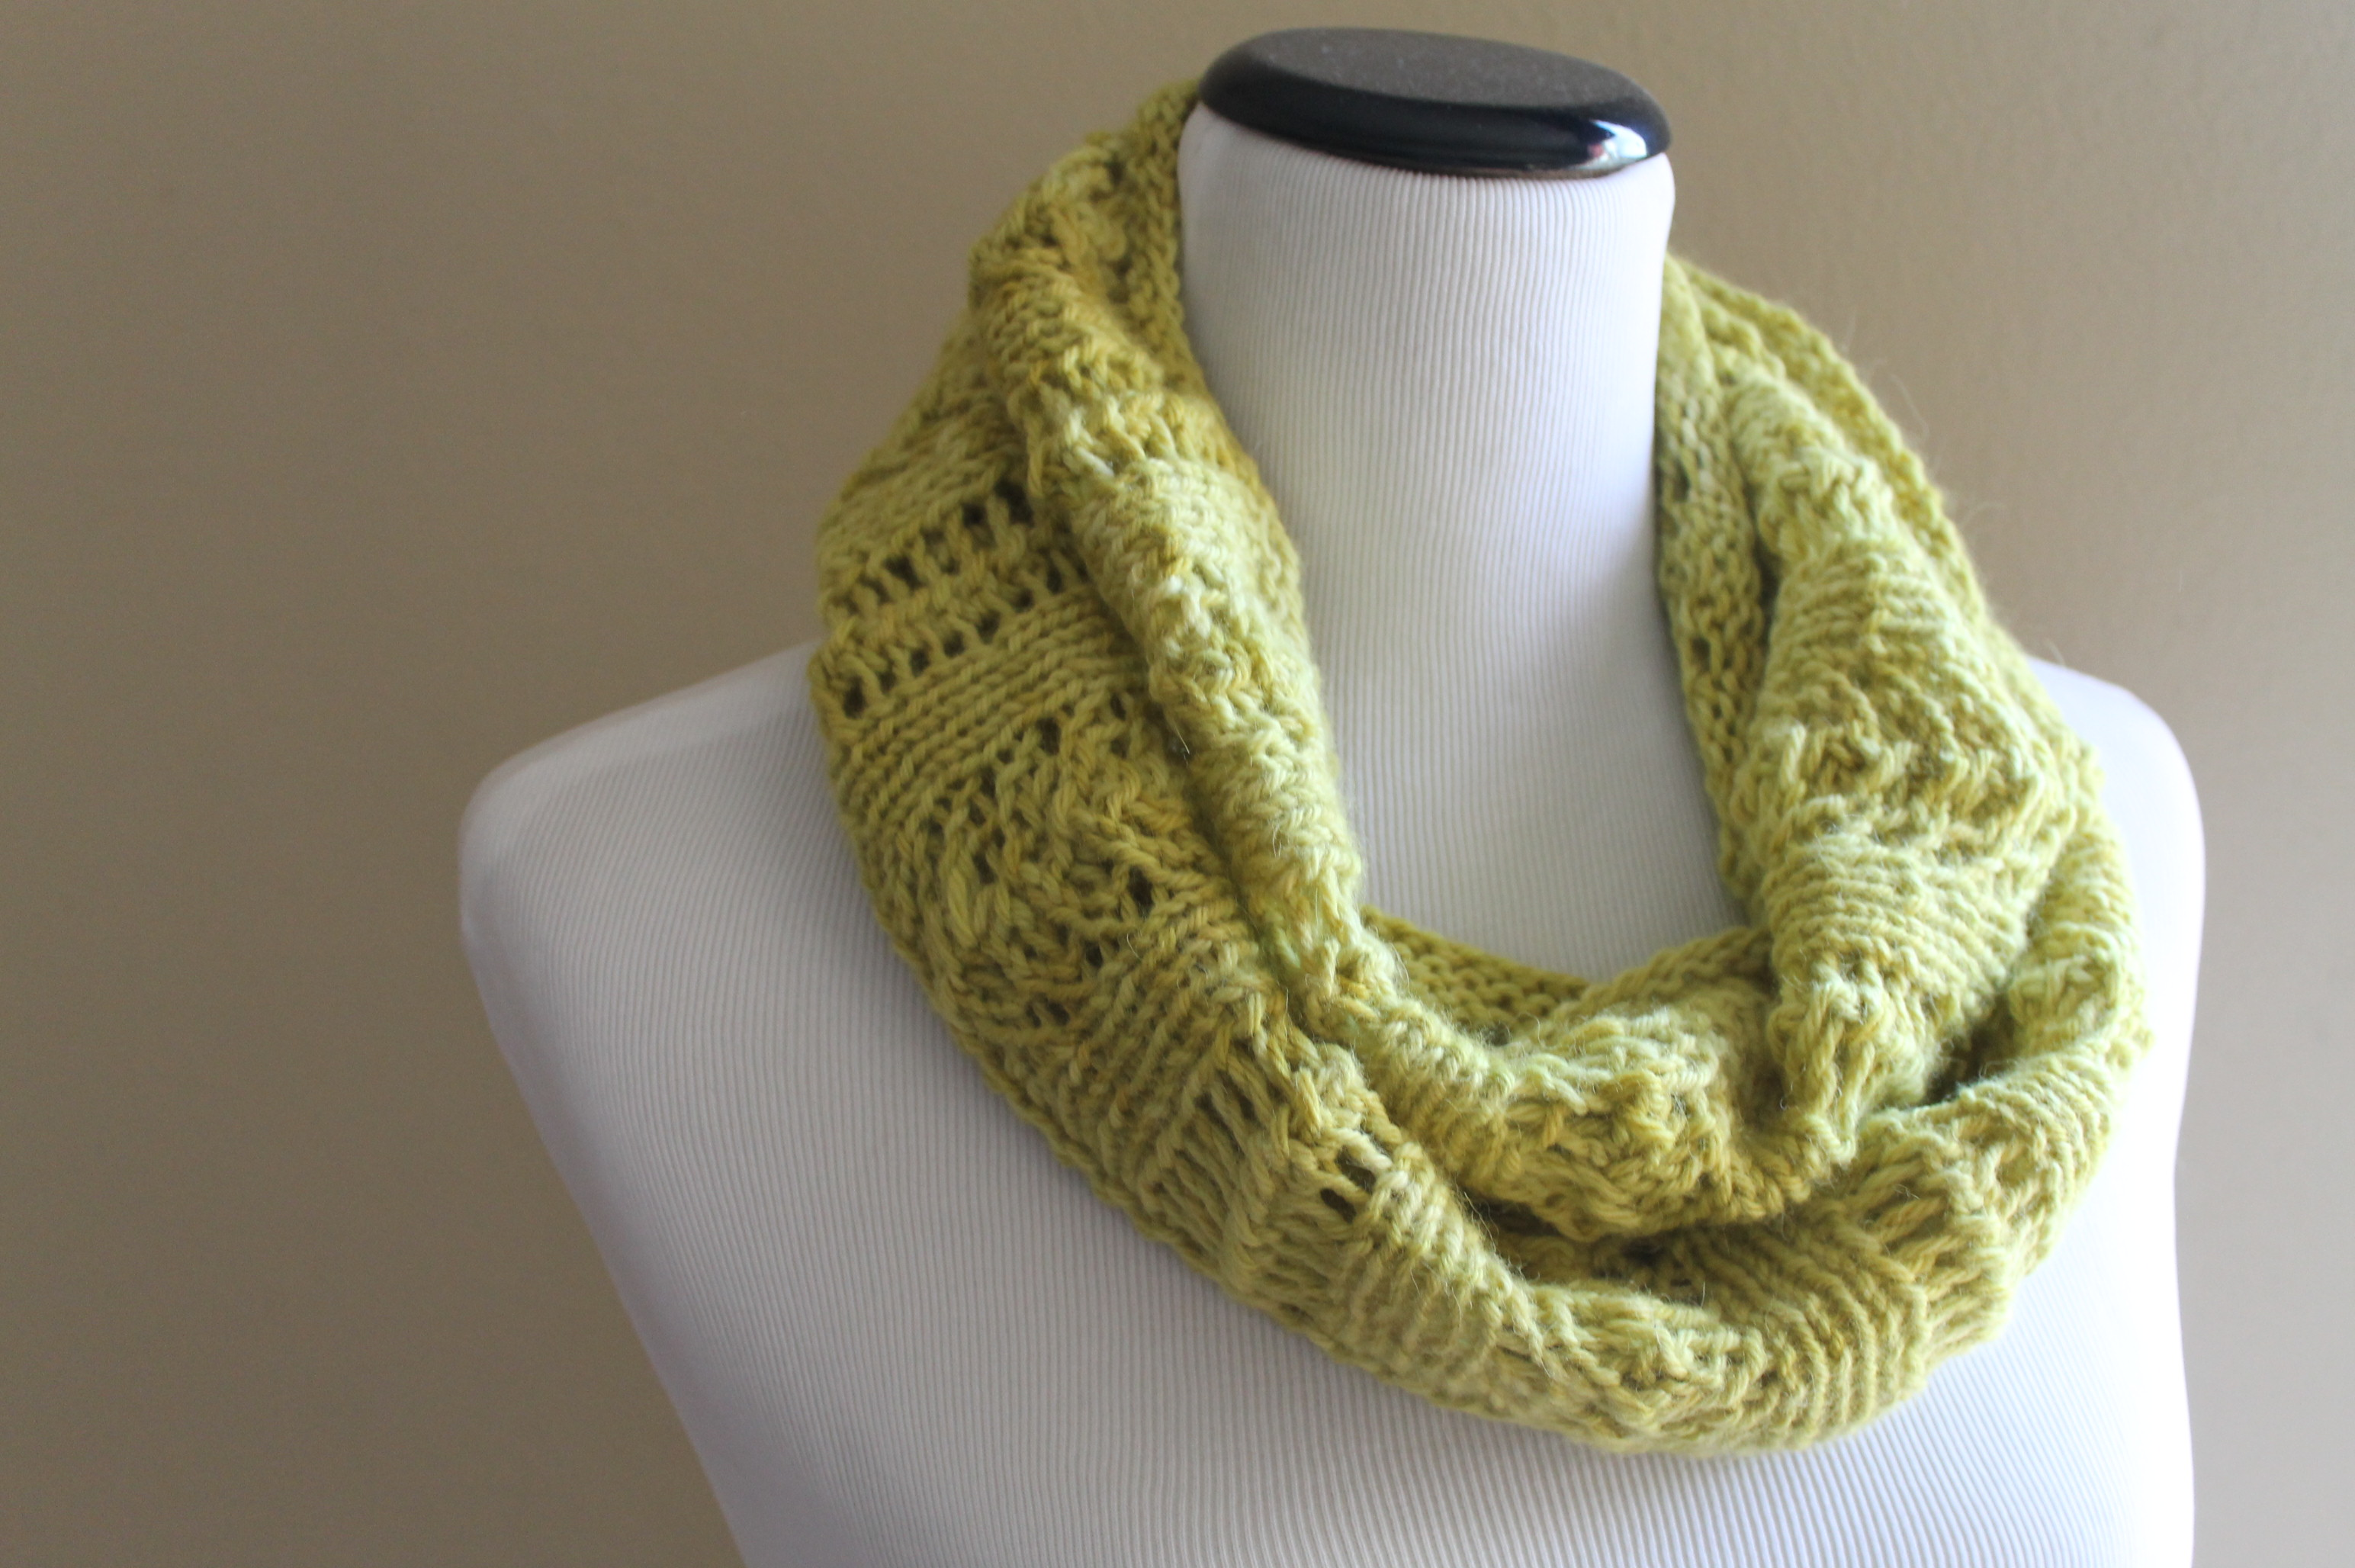 Tuscany Lace Cowl Knitting Pattern – Handmade by Anne Potter